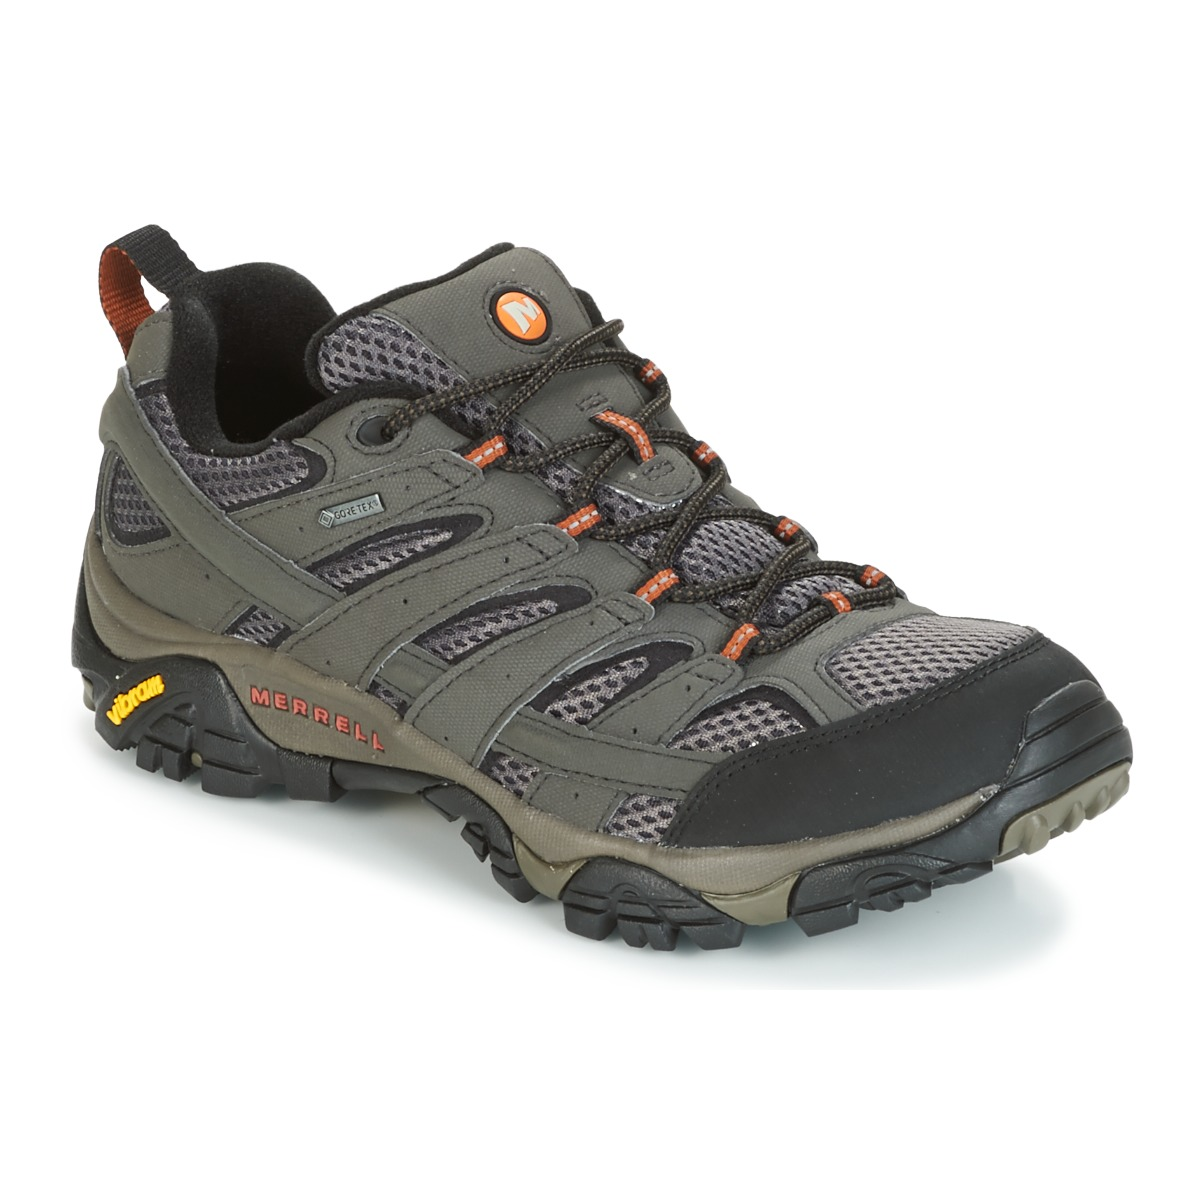 Chaussures Merrell homme MTxujnL